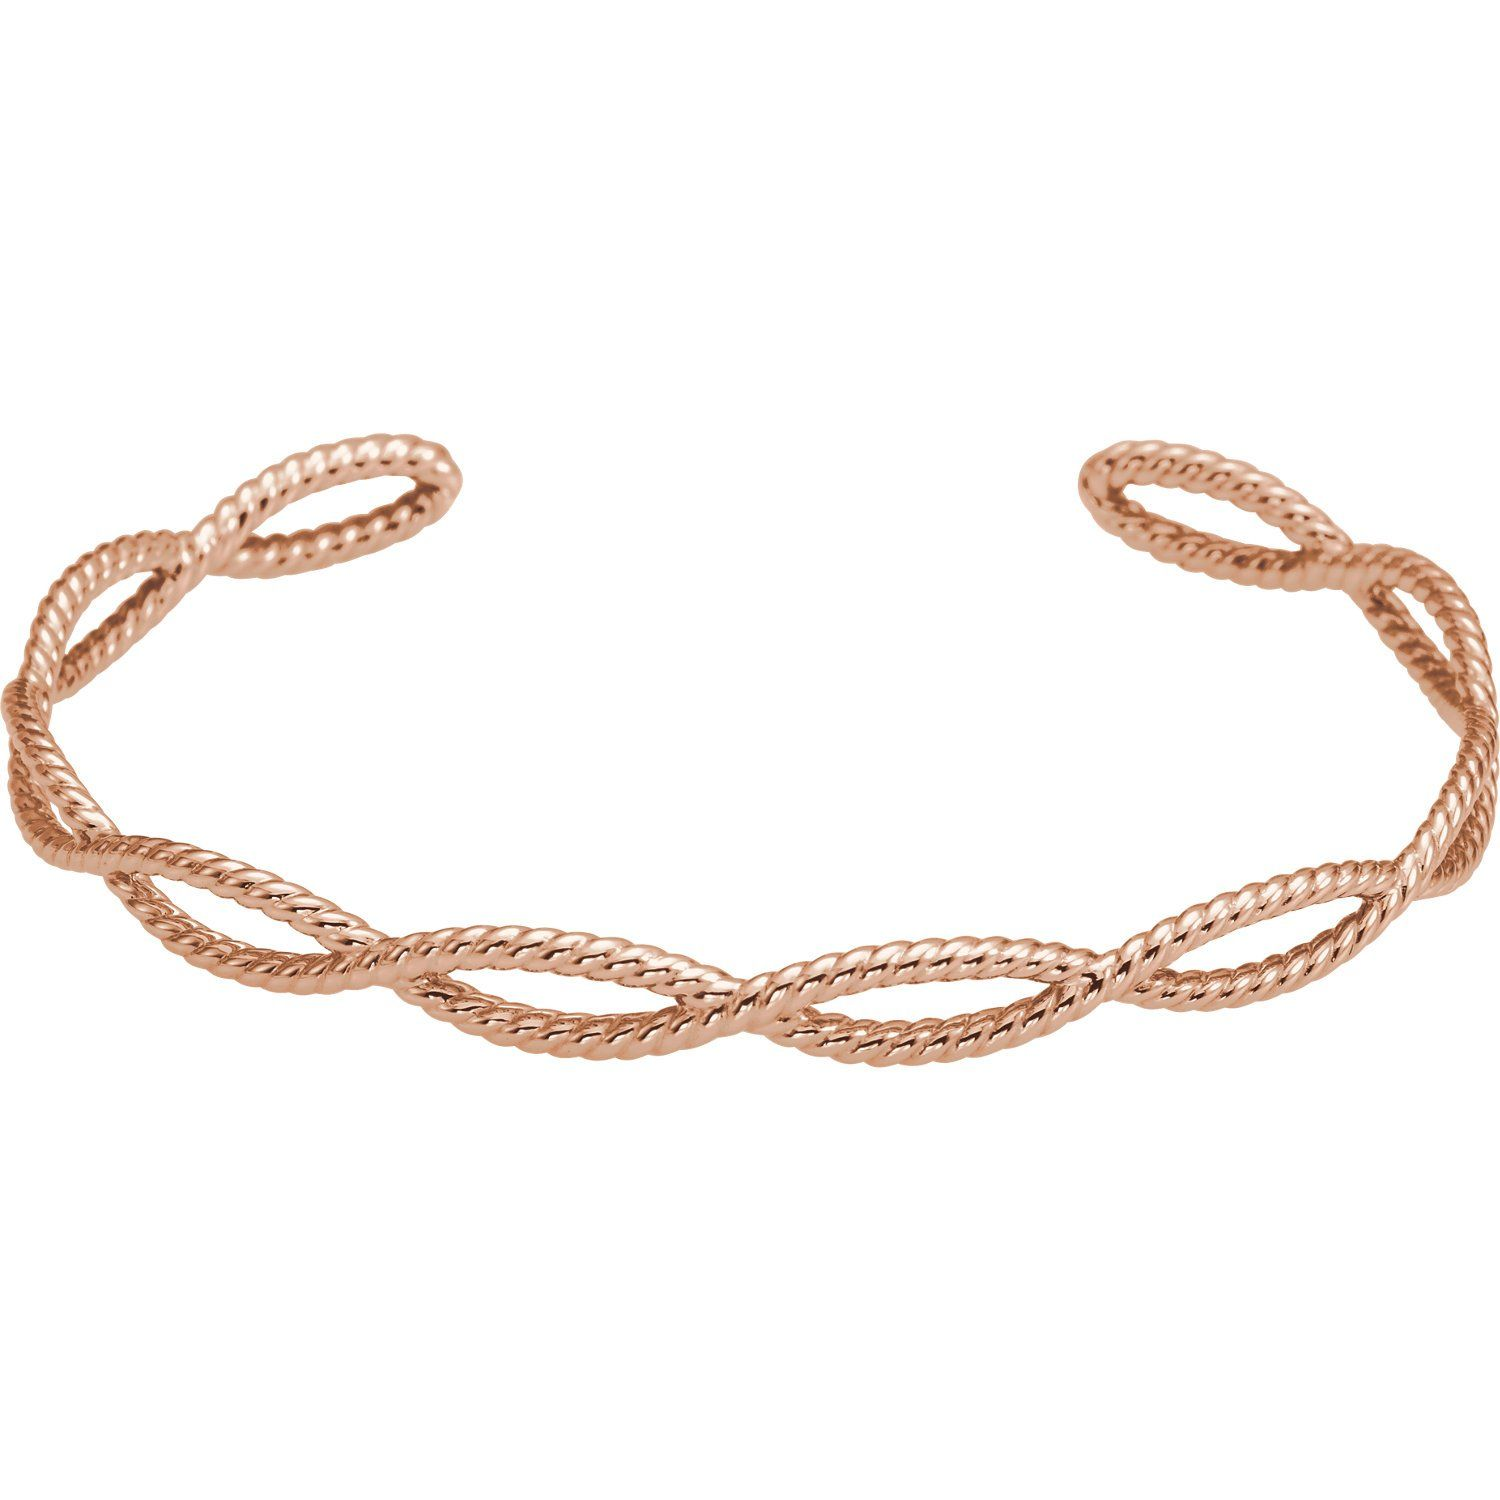 Infinity rope cuff bracelet infinity and products